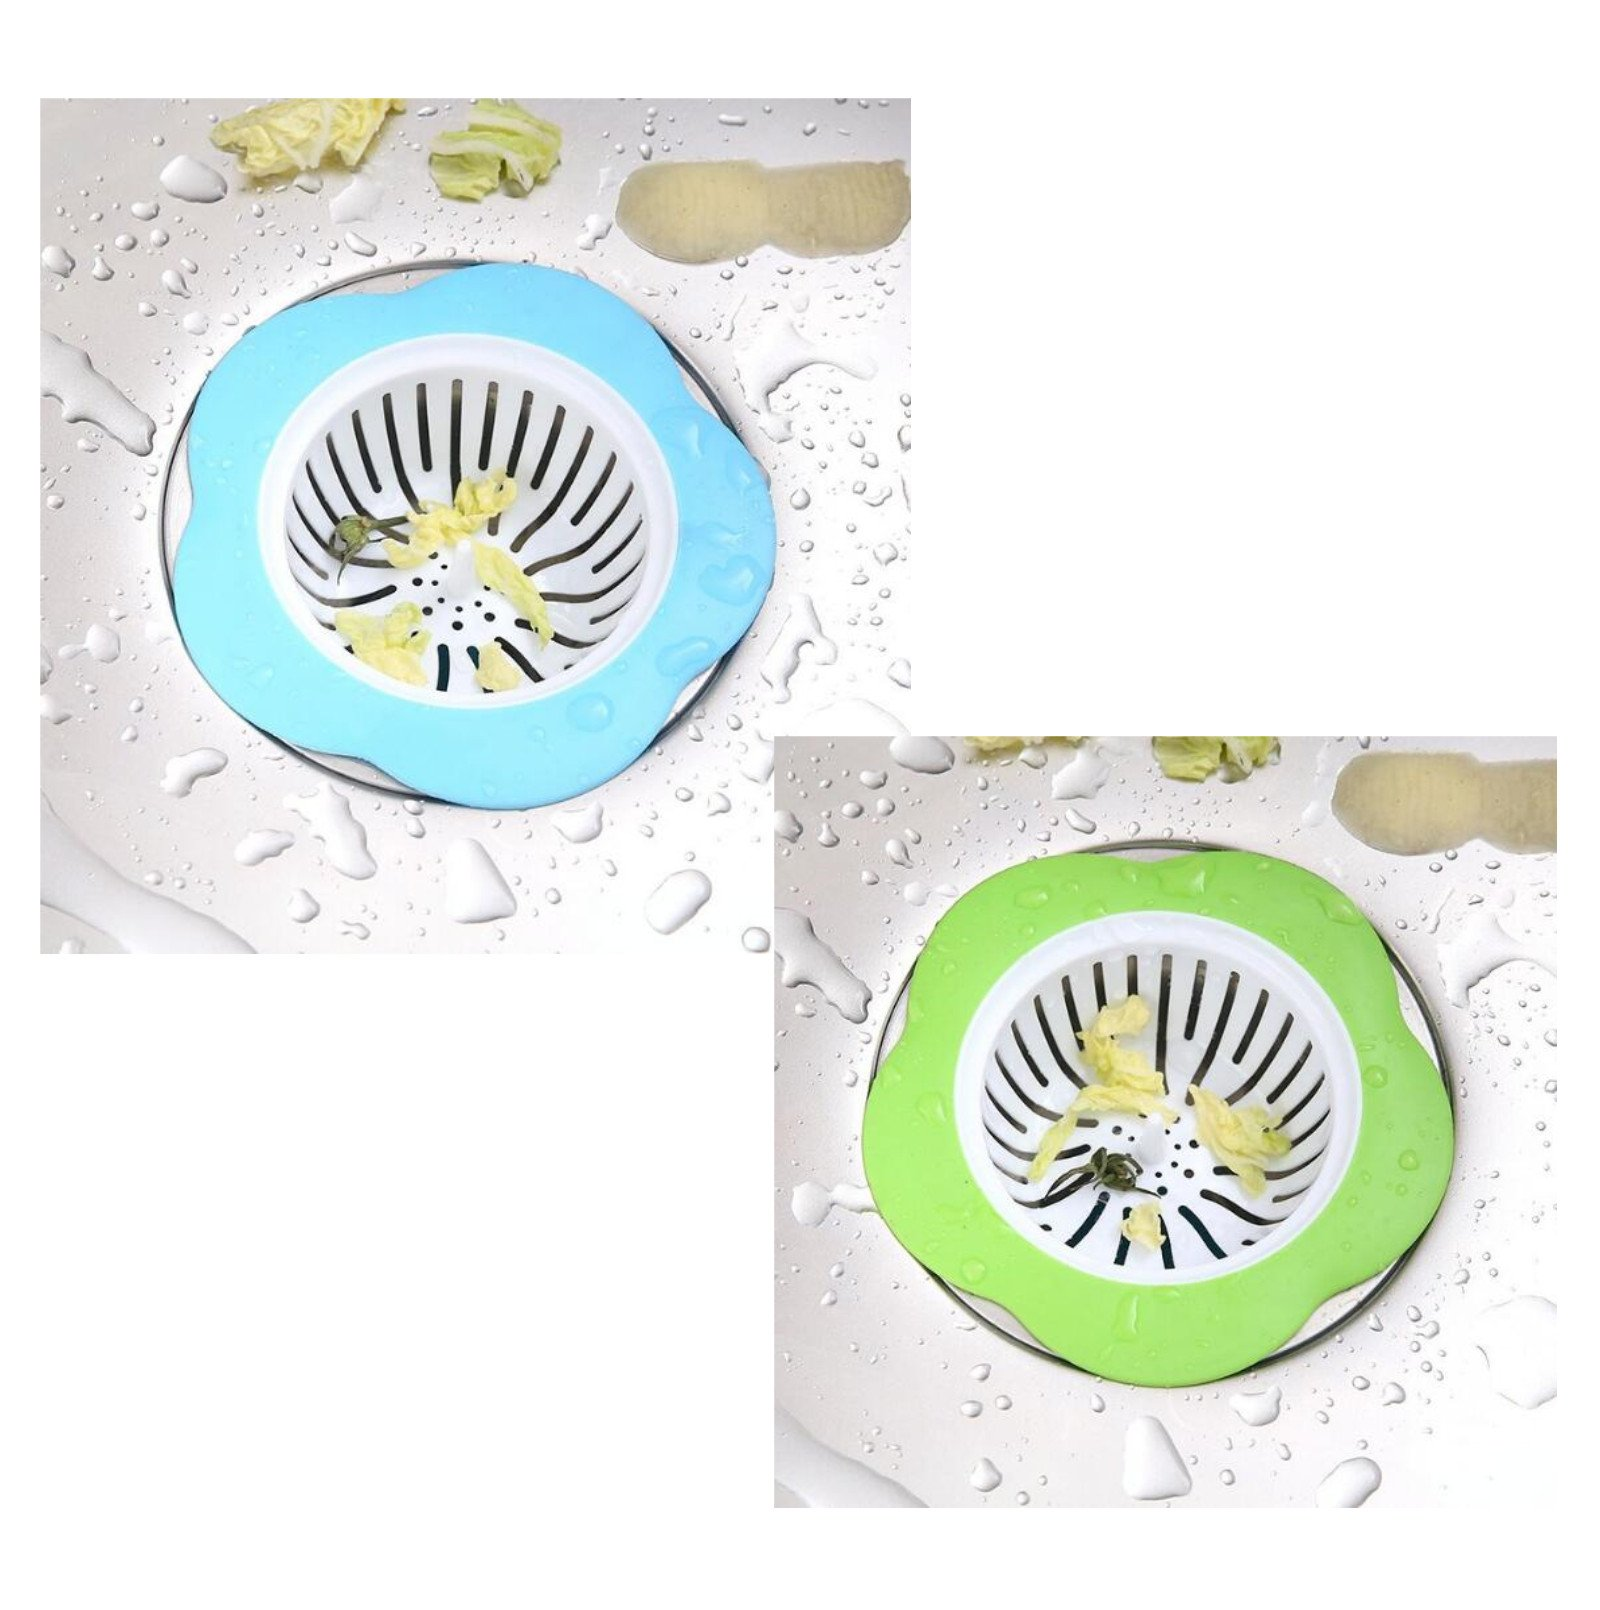 Flower Shaped Silicone Sink Strainer,Large Wide Rim 4.33'' Diameter, Fits Most Kitchen, Bathroom, Laundry Pool/2 PCS by MEIFU